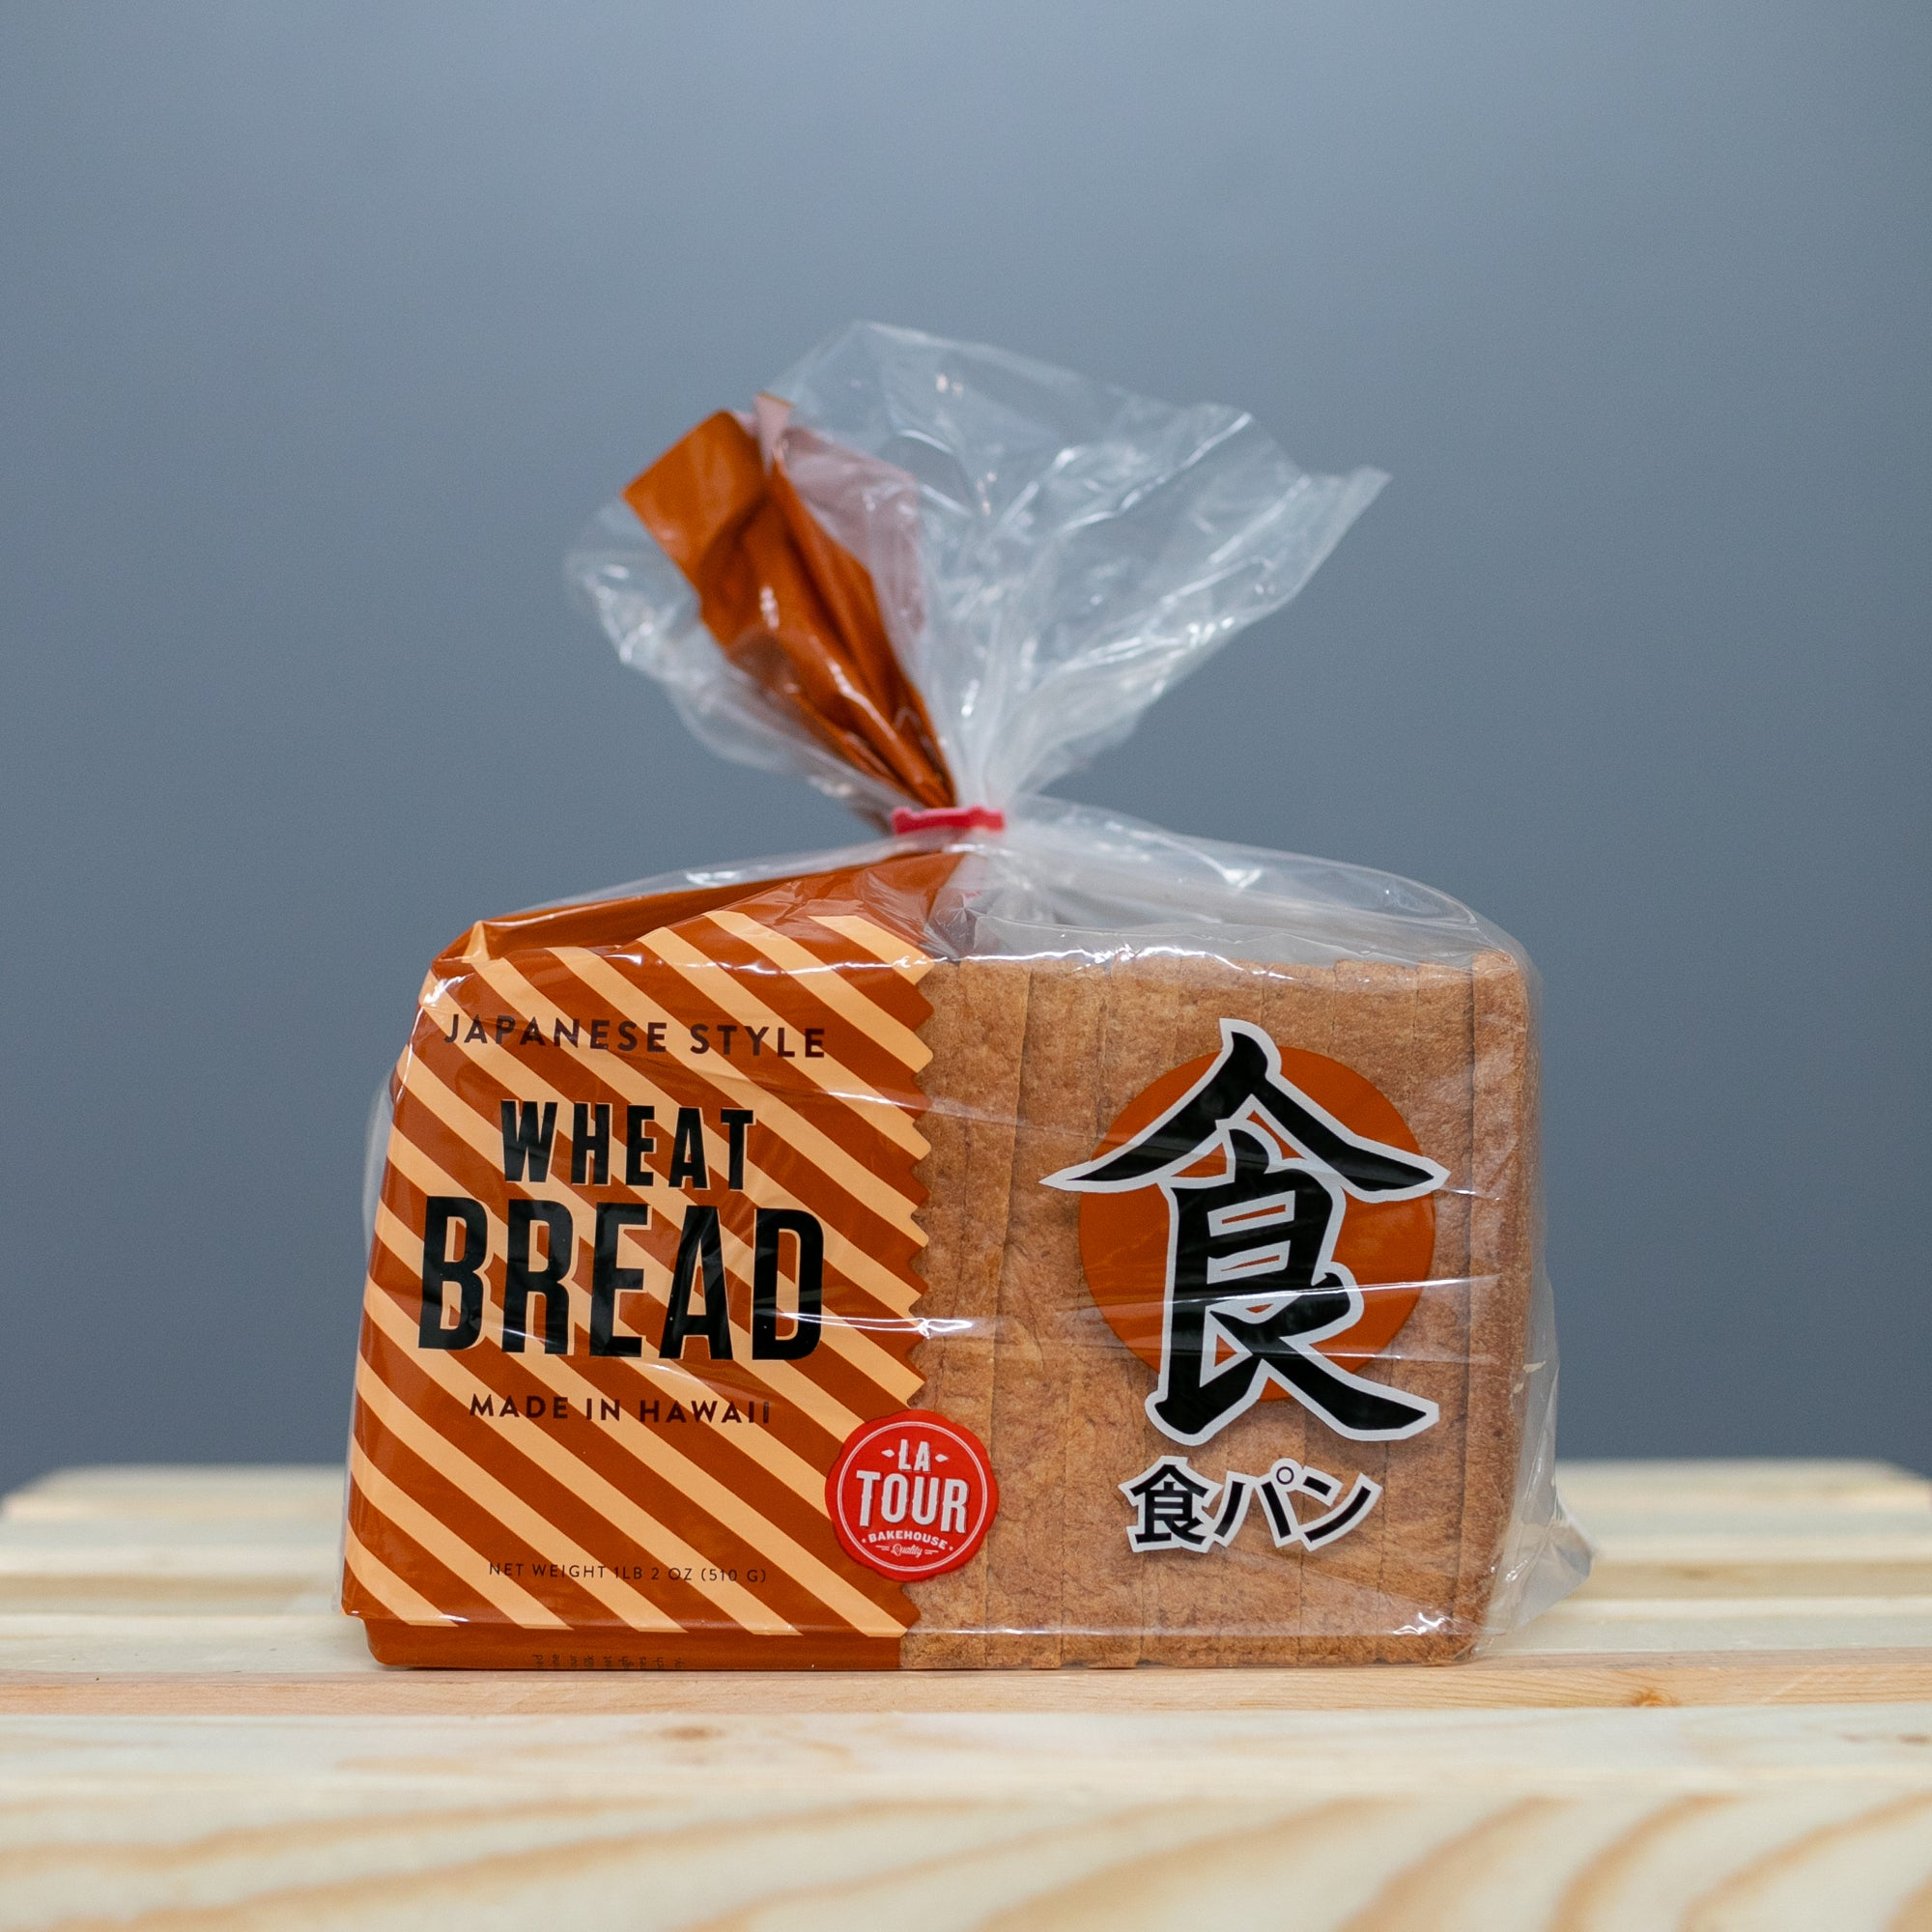 La Tour Bakehouse Japanese Wheat Bread (18oz)